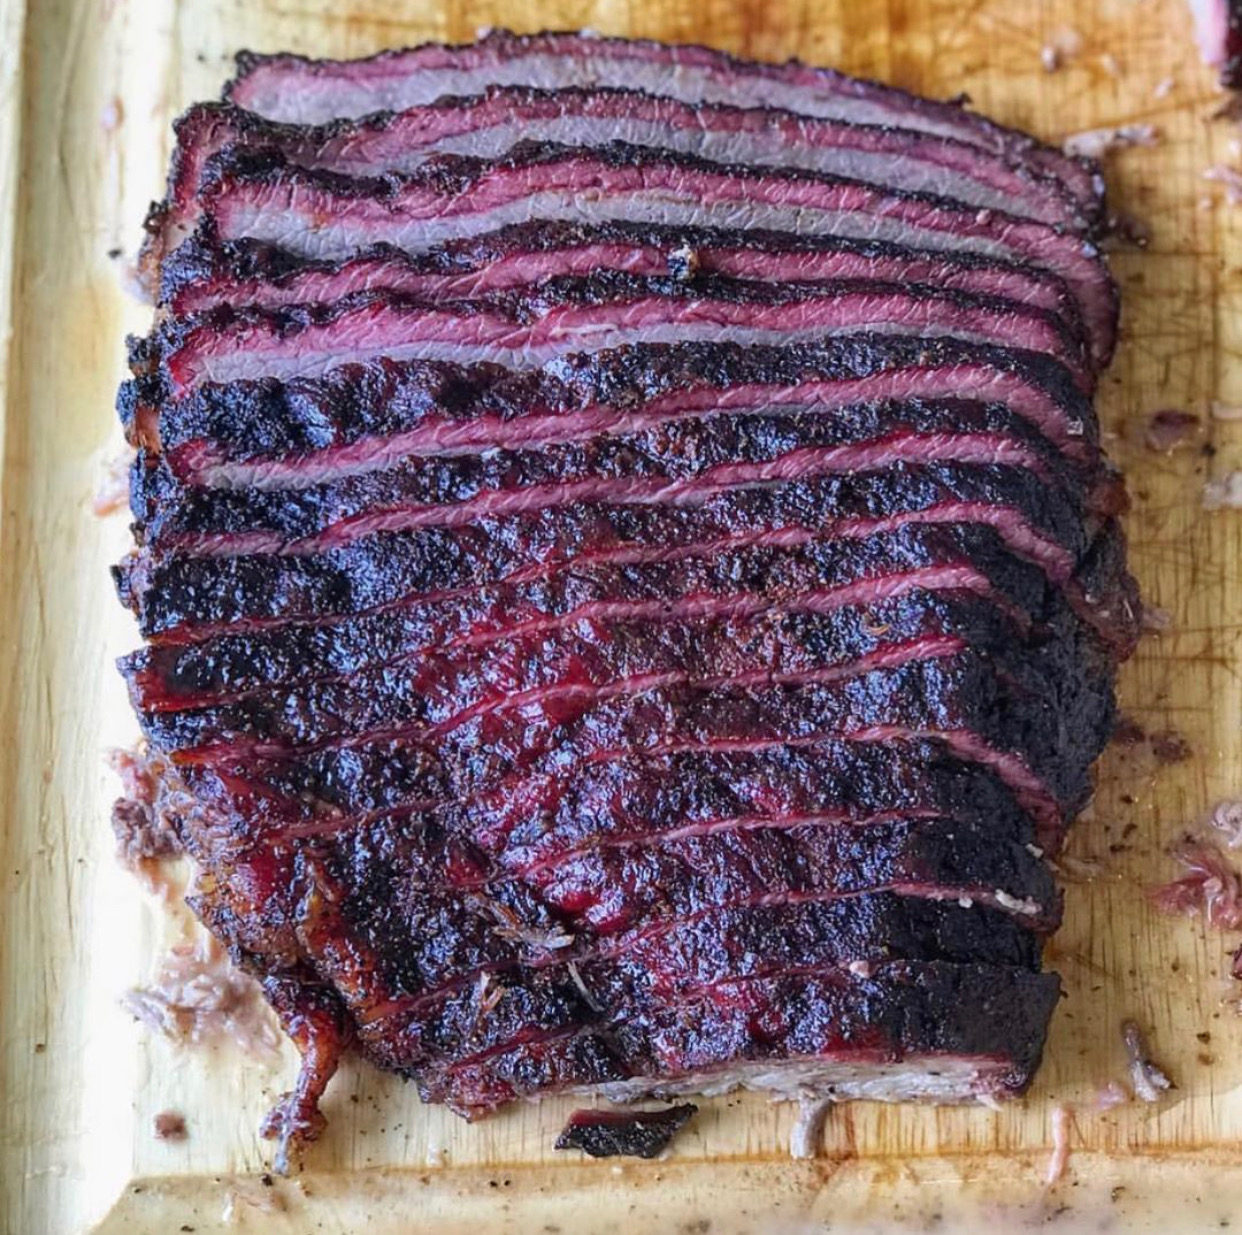 Smoked BBQ brisket slices are like manna from heaven!